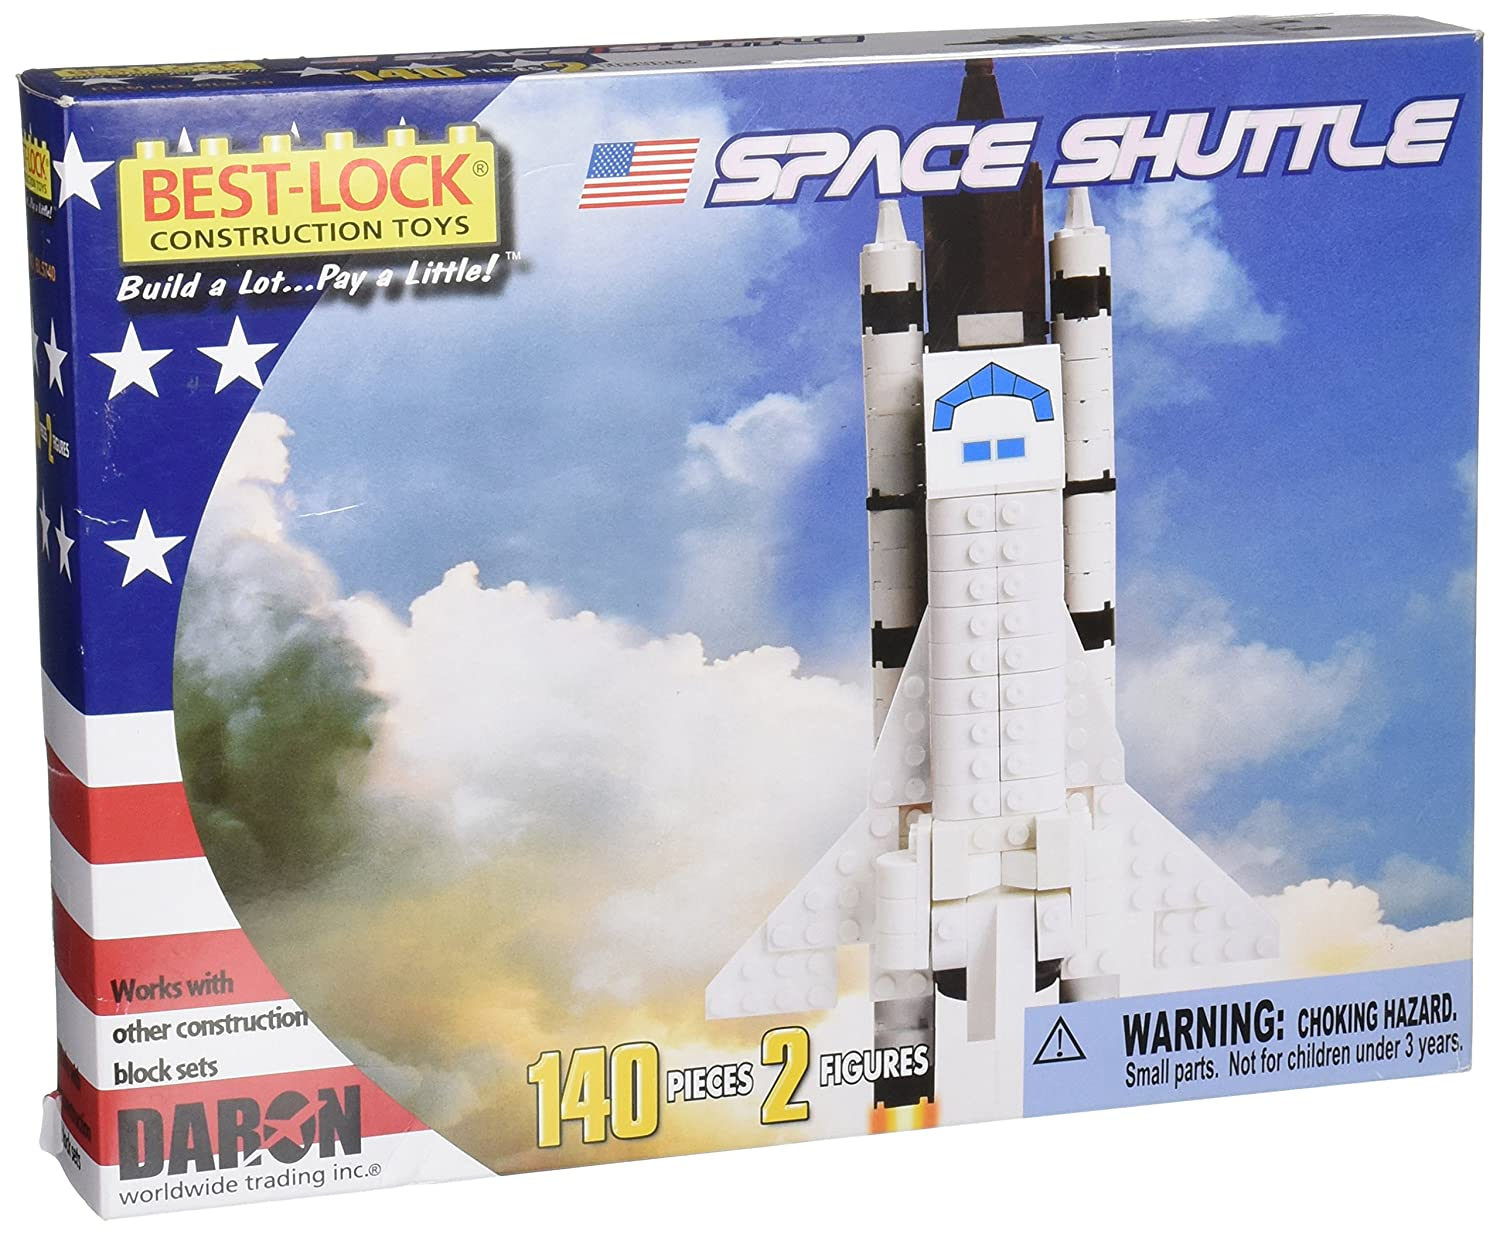 Space Shuttle 140 Piece Best Lock Construction Toy with Action Figure